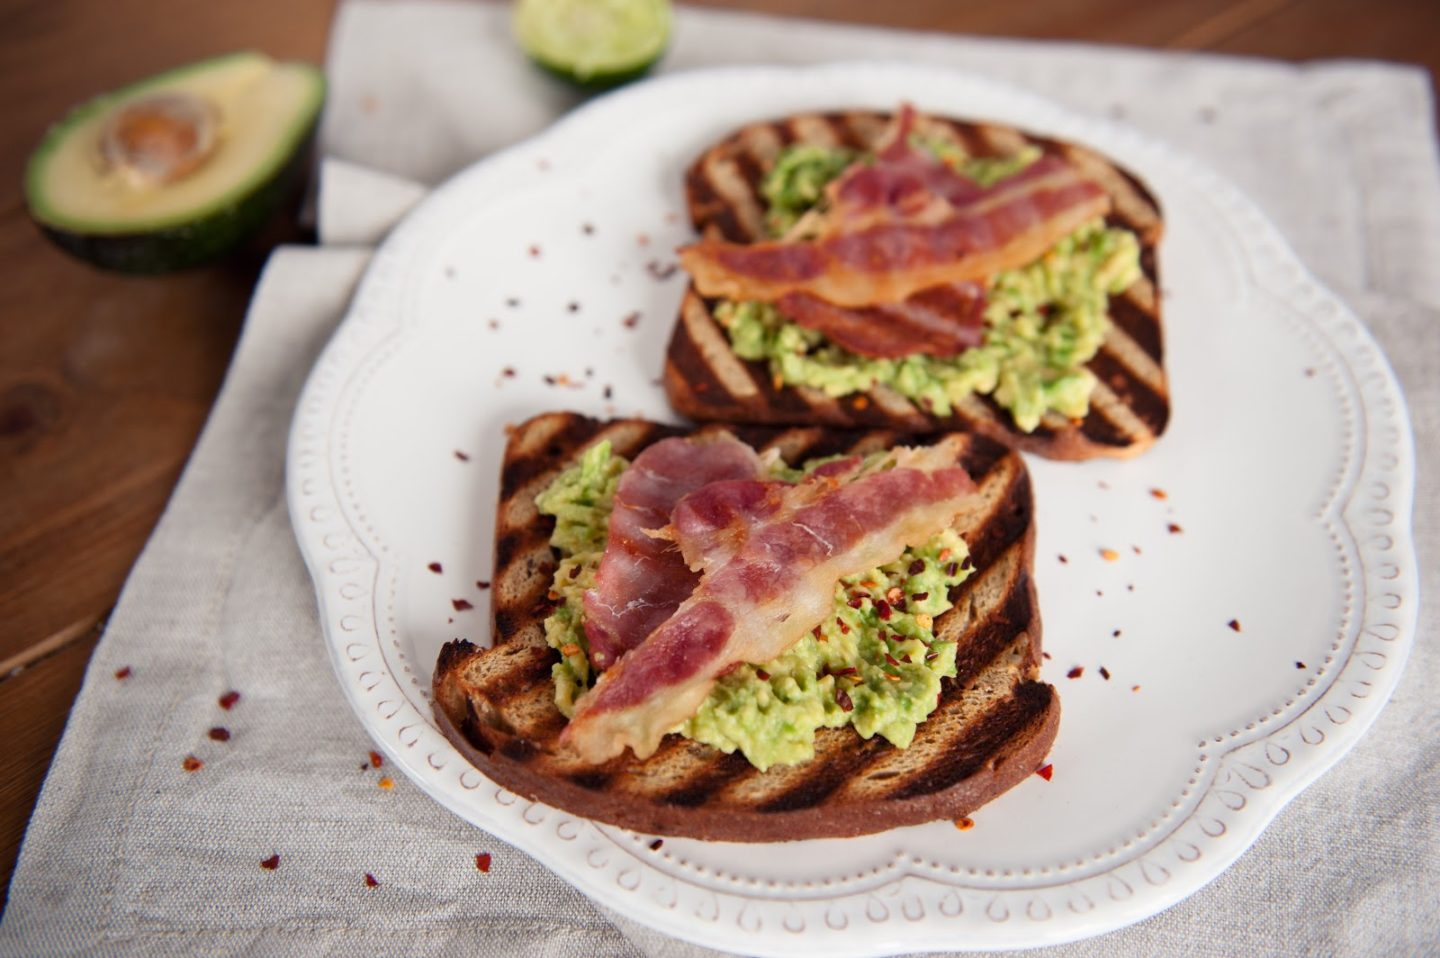 Tefal Optigrill Two Minute Avocado & Bacon on Toast